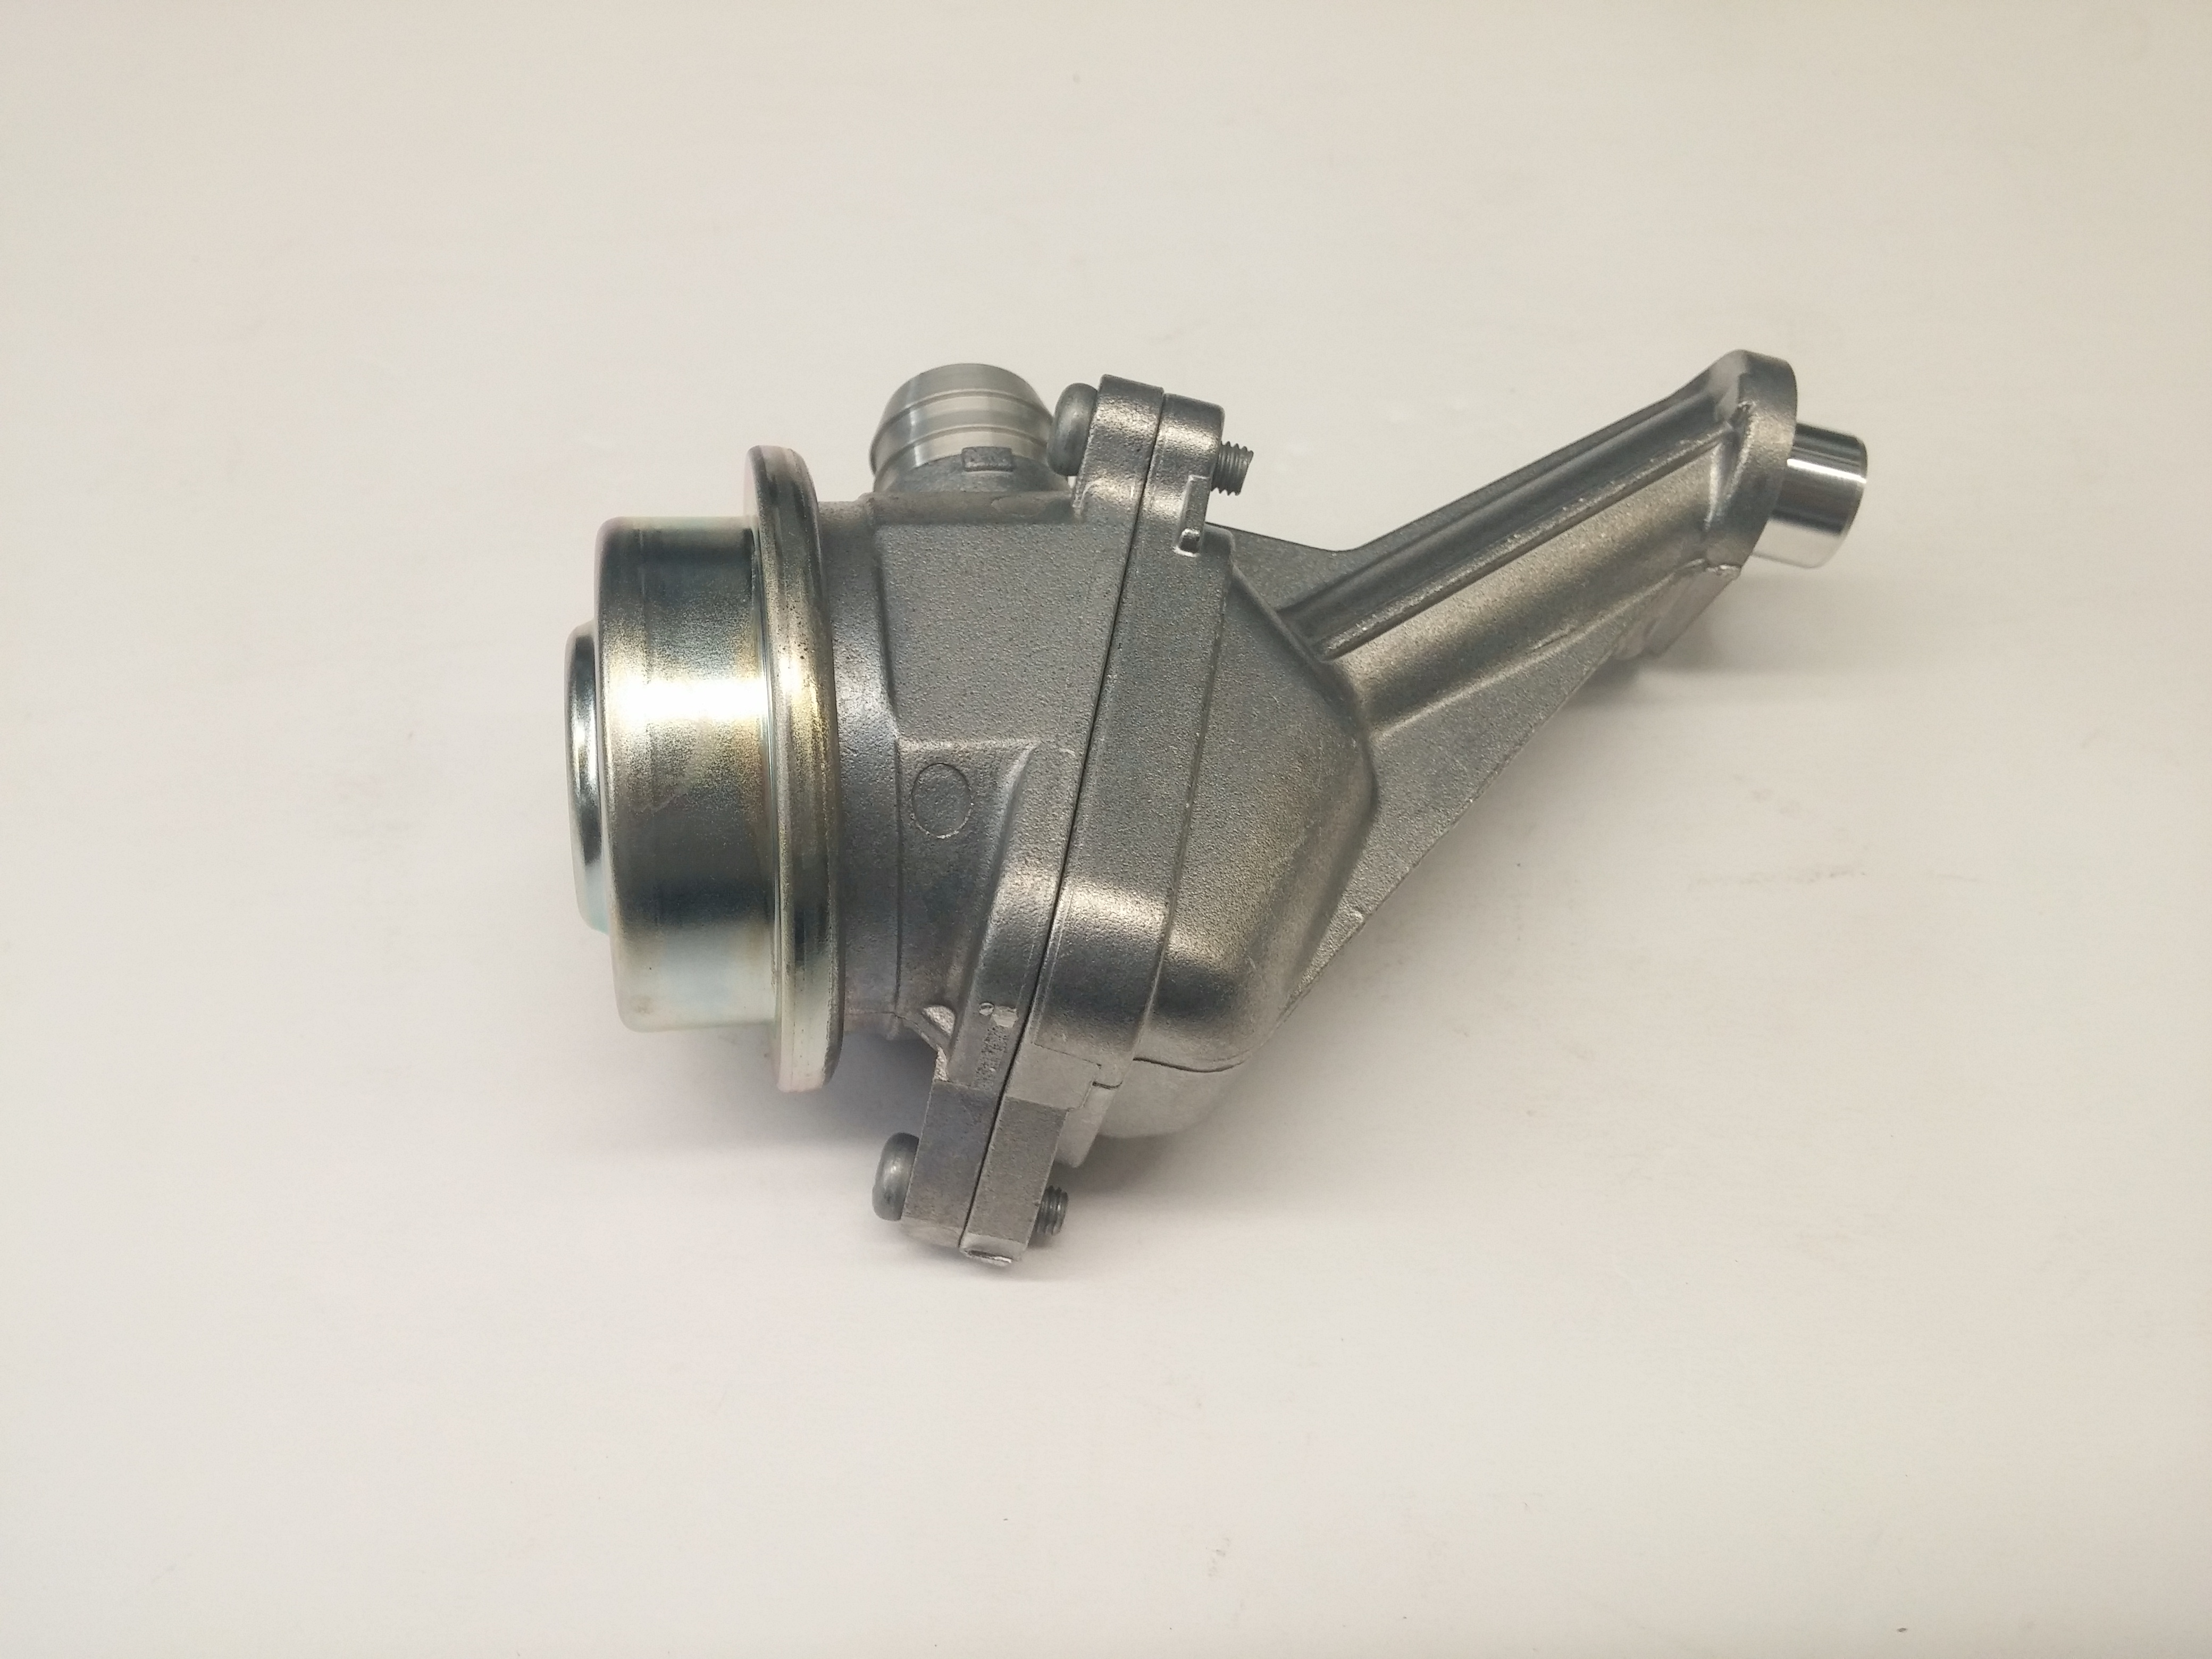 Mercedes benz c320 check valve diverter valve egr valve for Mercedes benz egr valve